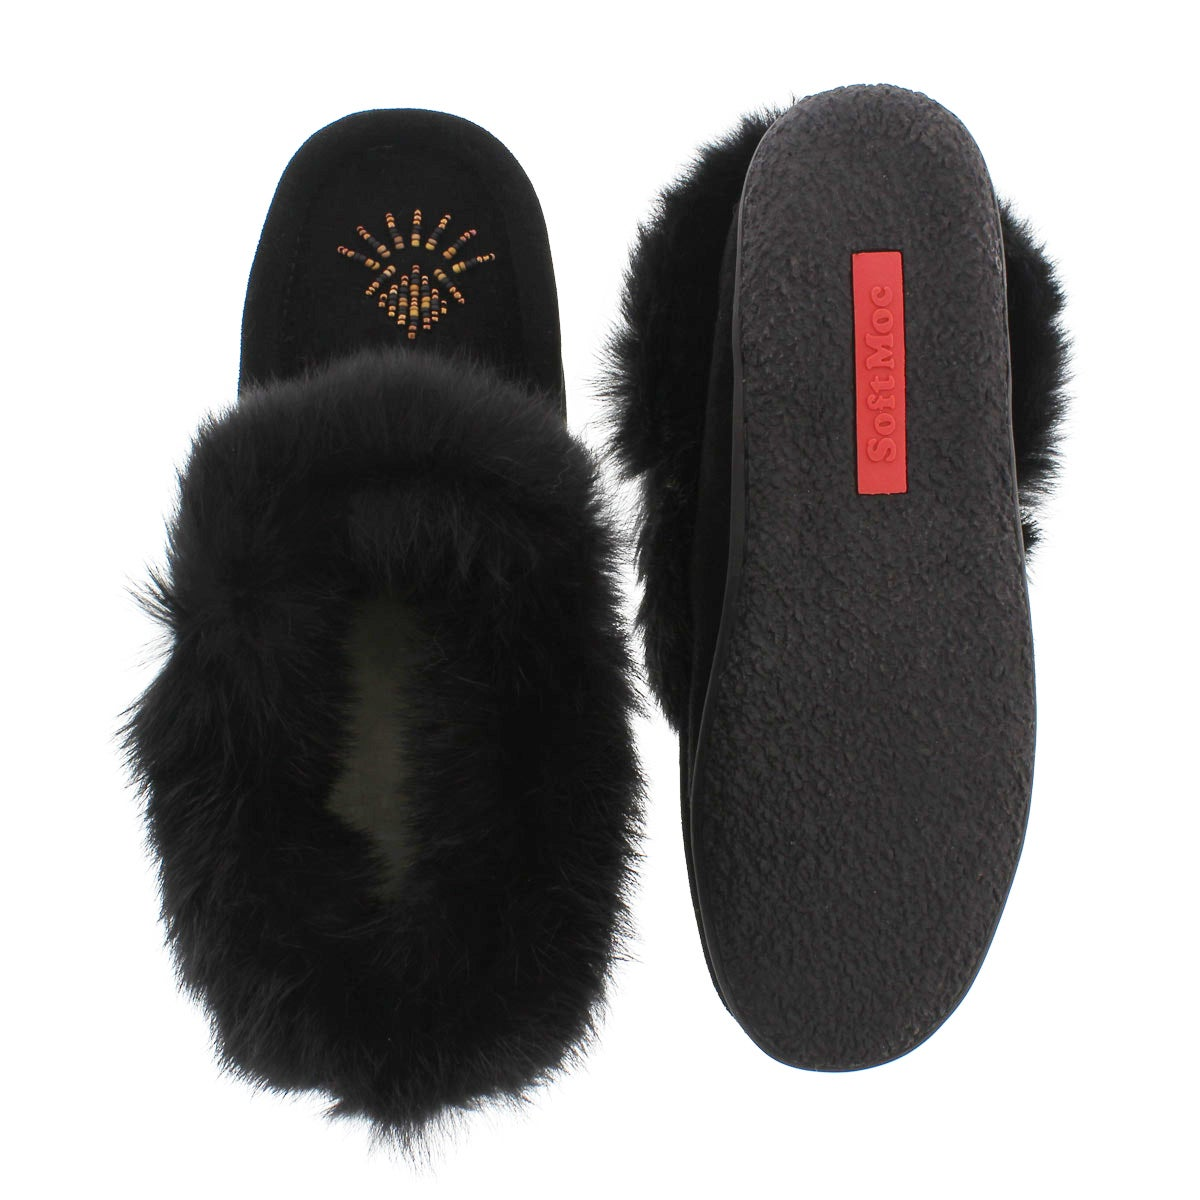 Lds Cute 3 black rabbit fur moccasin